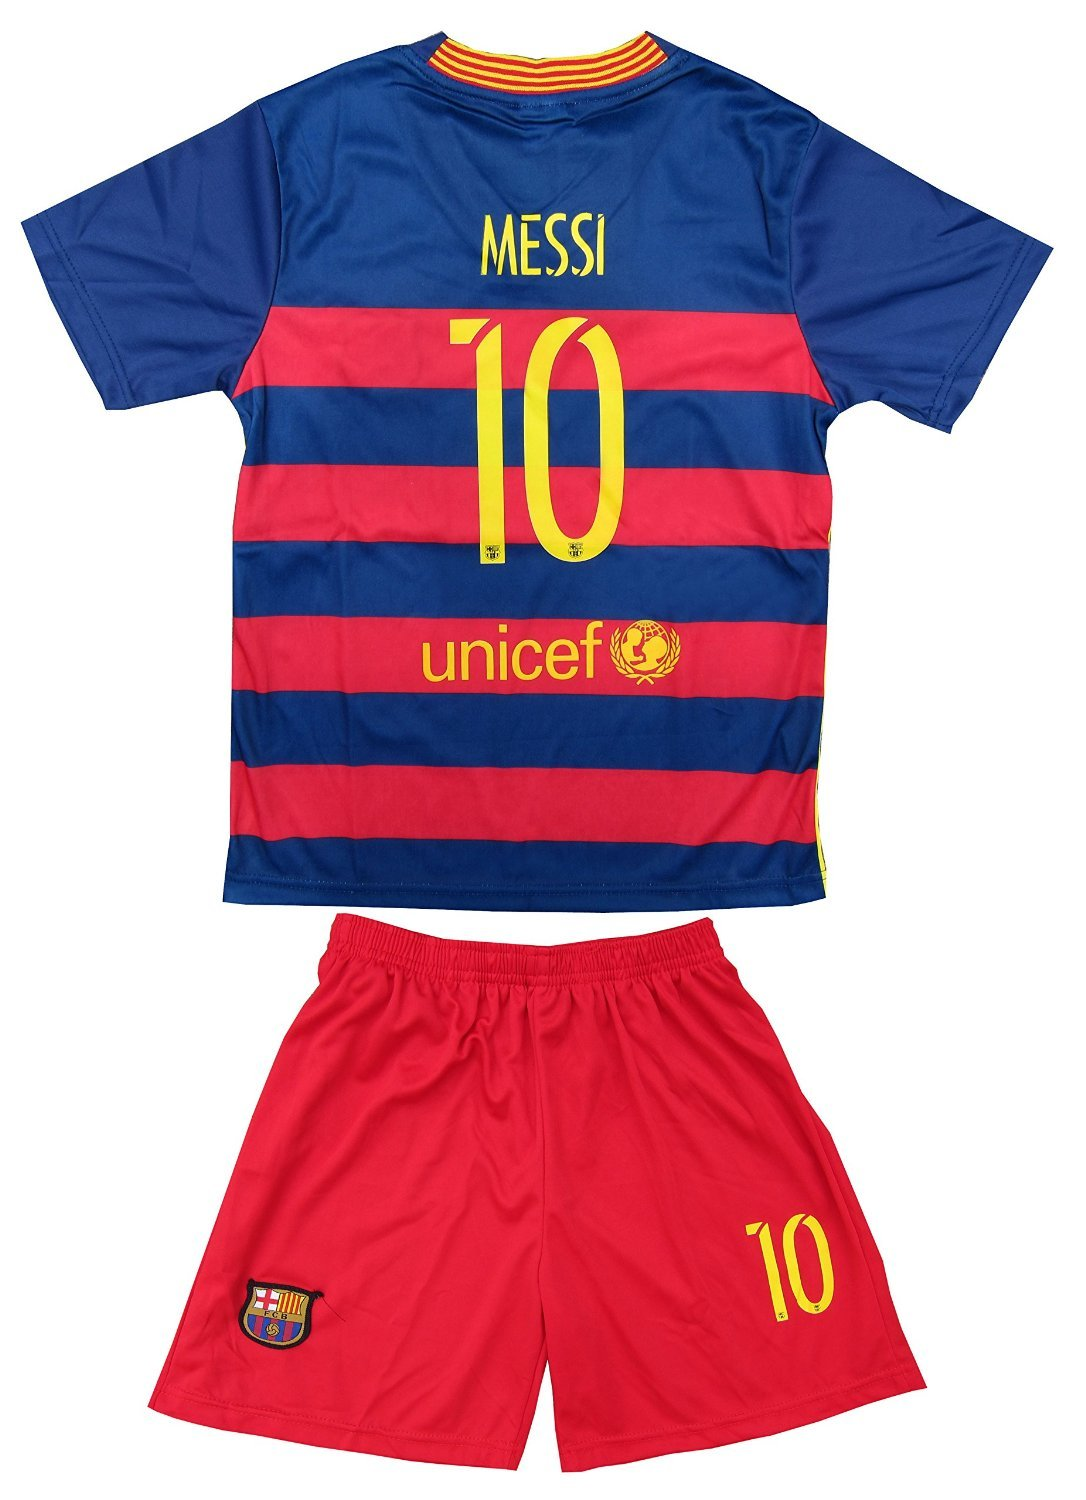 2015/2016 FC BARCELONA LIONEL MESSI #10 HOME FOOTBALL Soccer KIDS JERSEY & SHORT (6-7 YEARS)